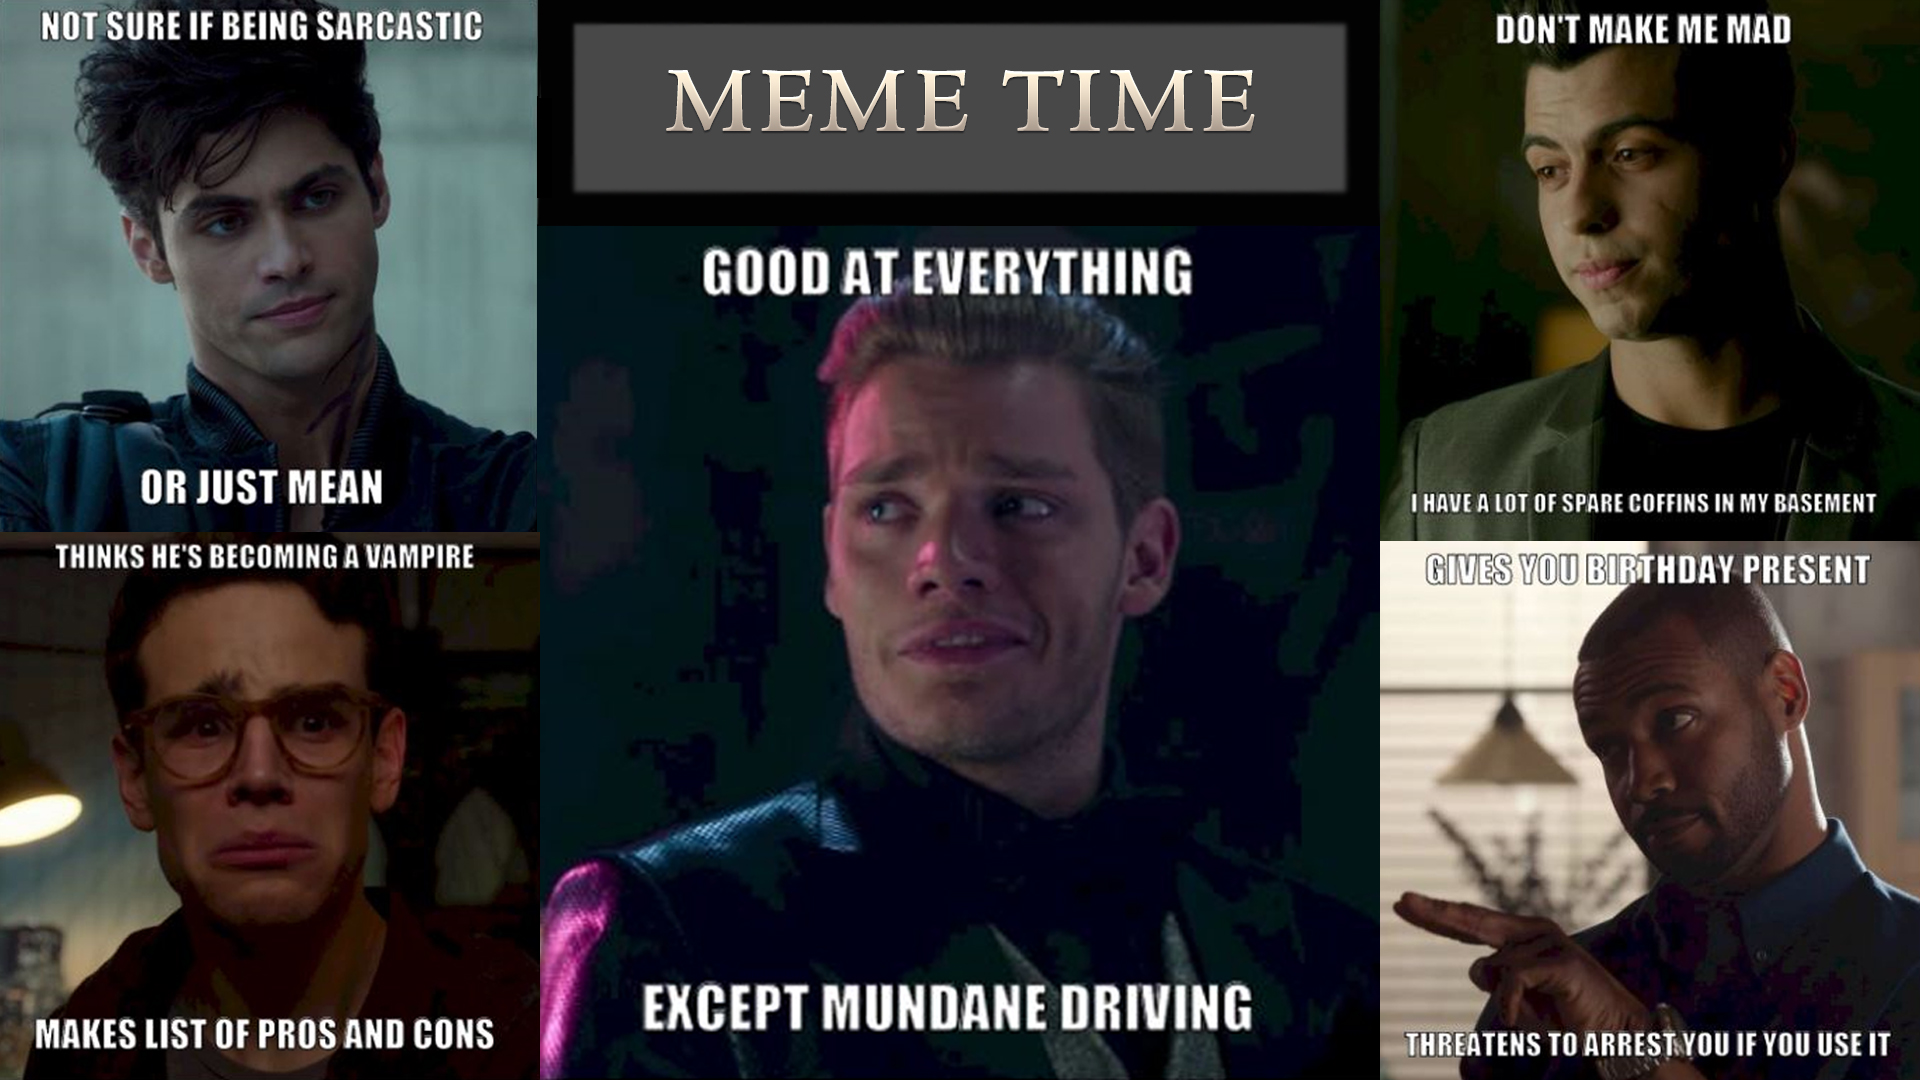 Shadowhunters - Always Wanted To Meme The Shadowhunters Boys? Well Now You Can! - 1002